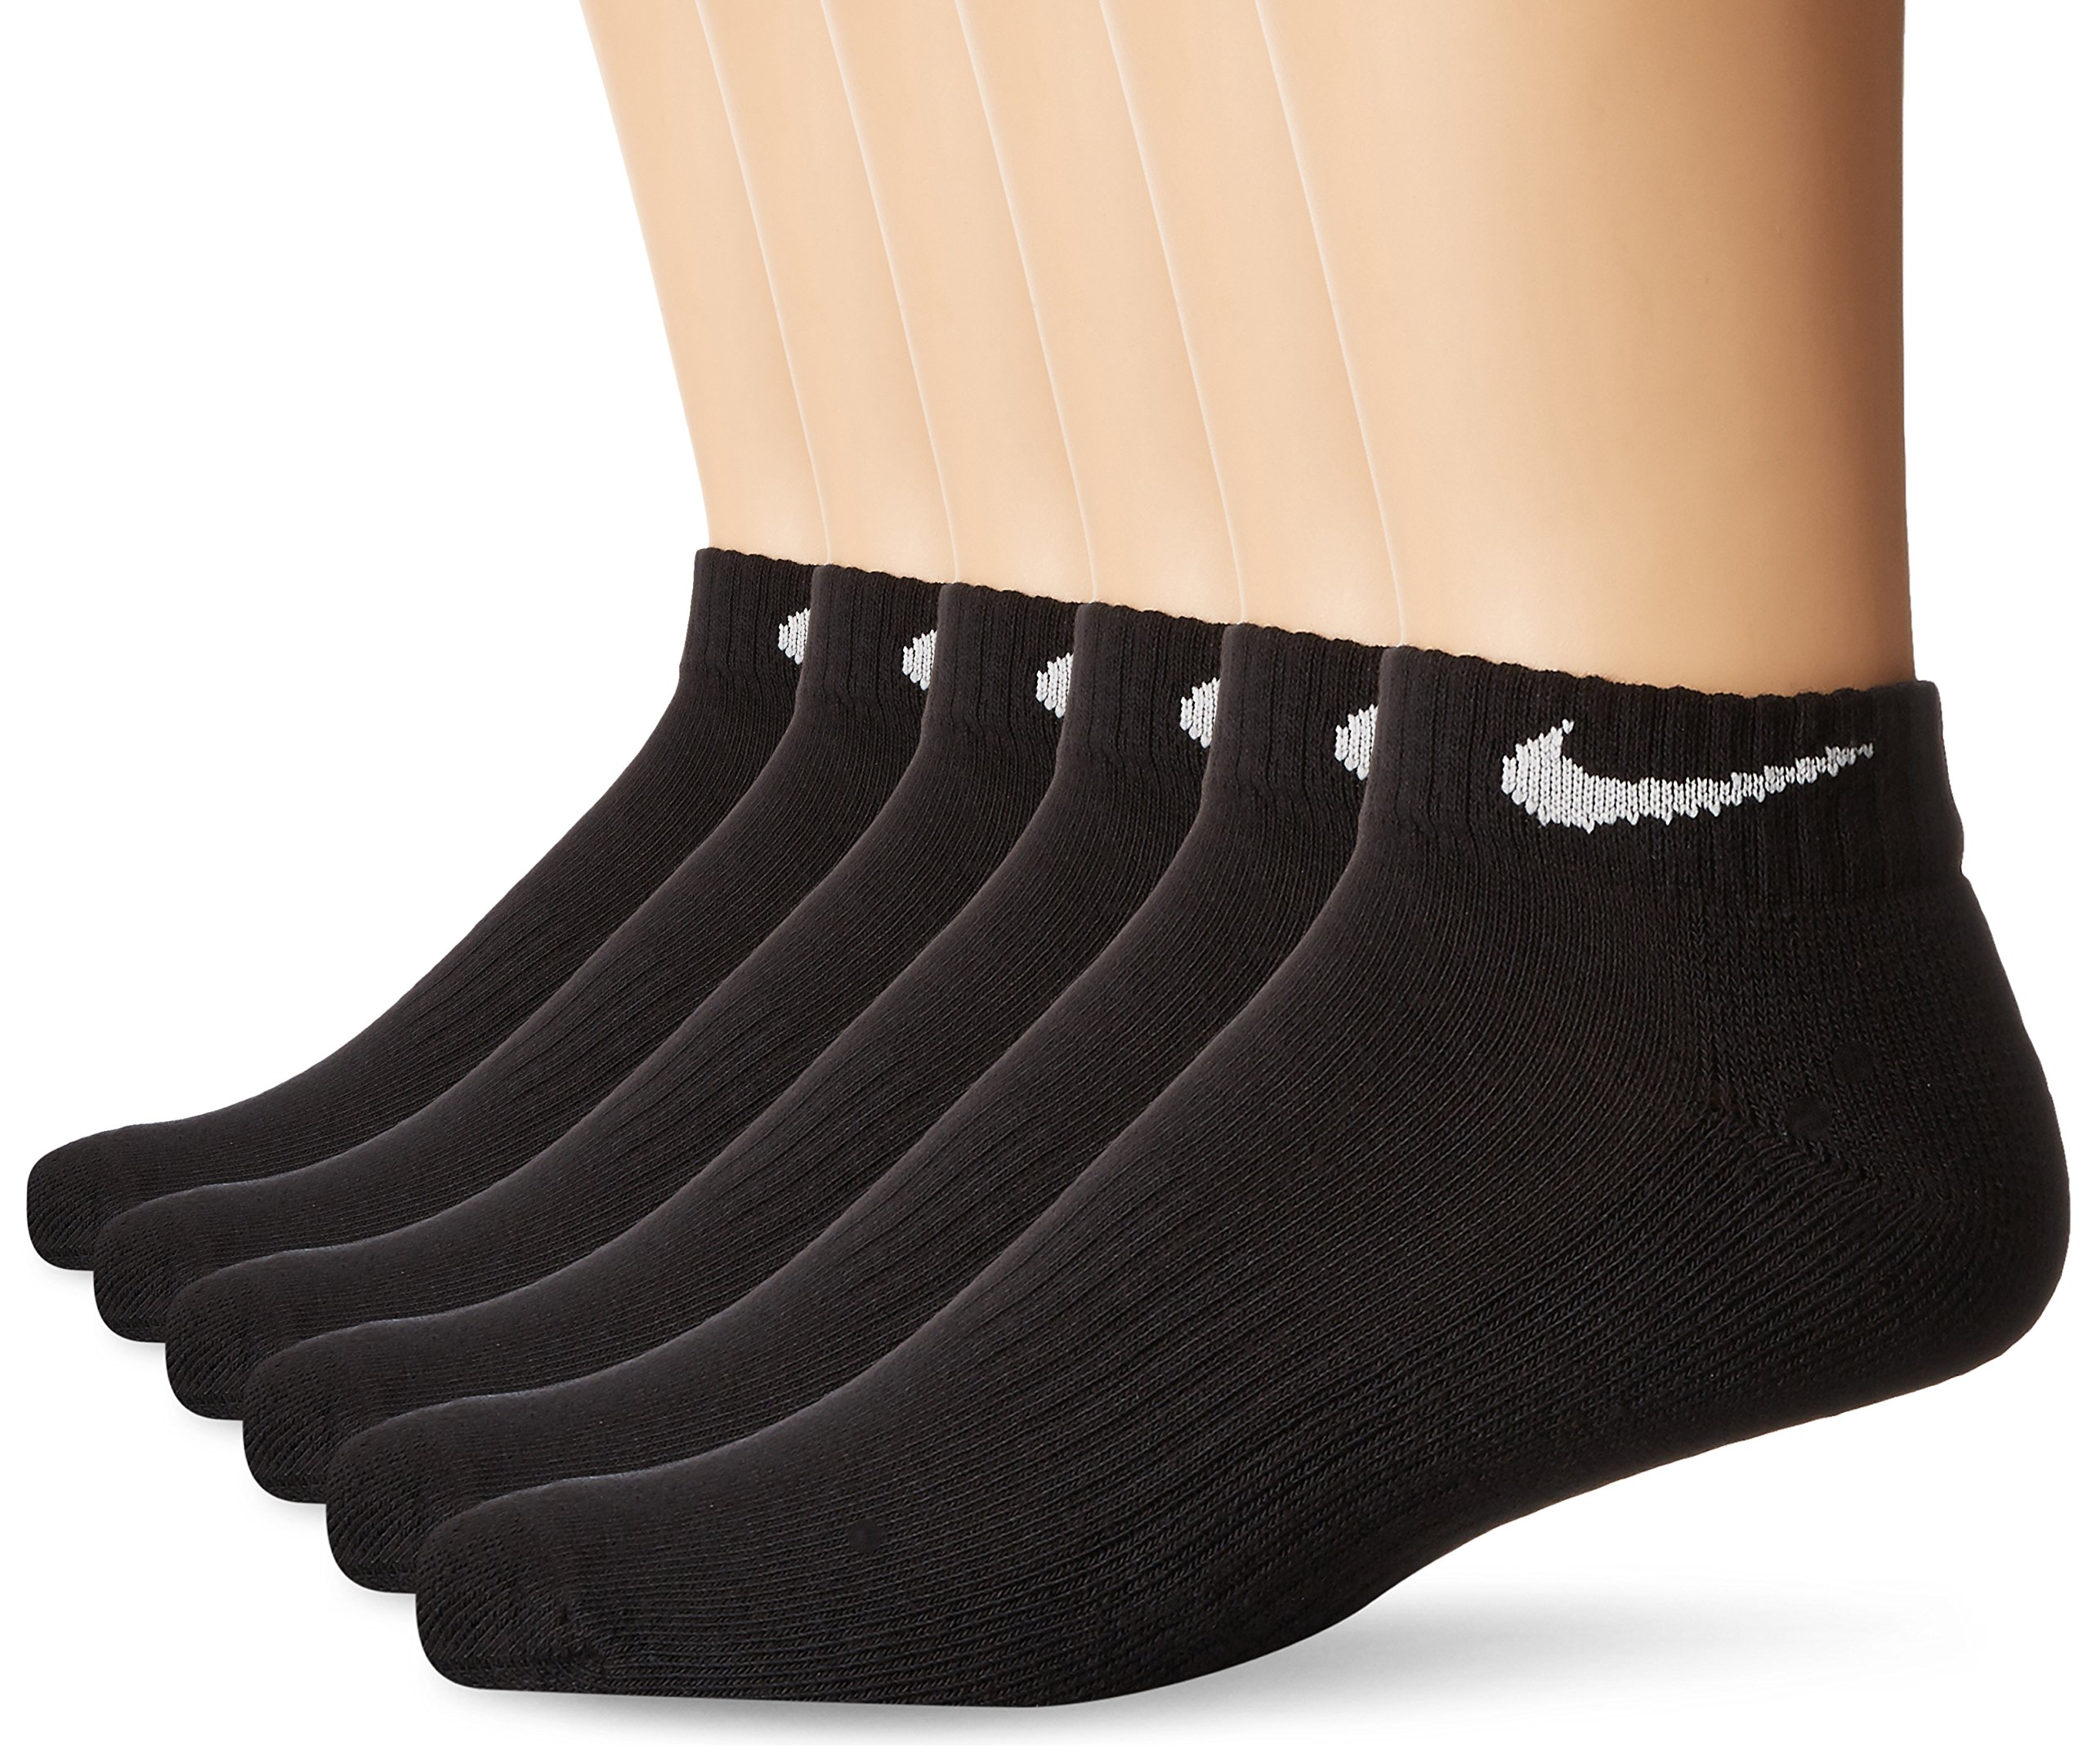 NIKE Unisex Performance Cushion Low Rise Socks with Bag (6 Pairs), Black/White, Medium by Nike